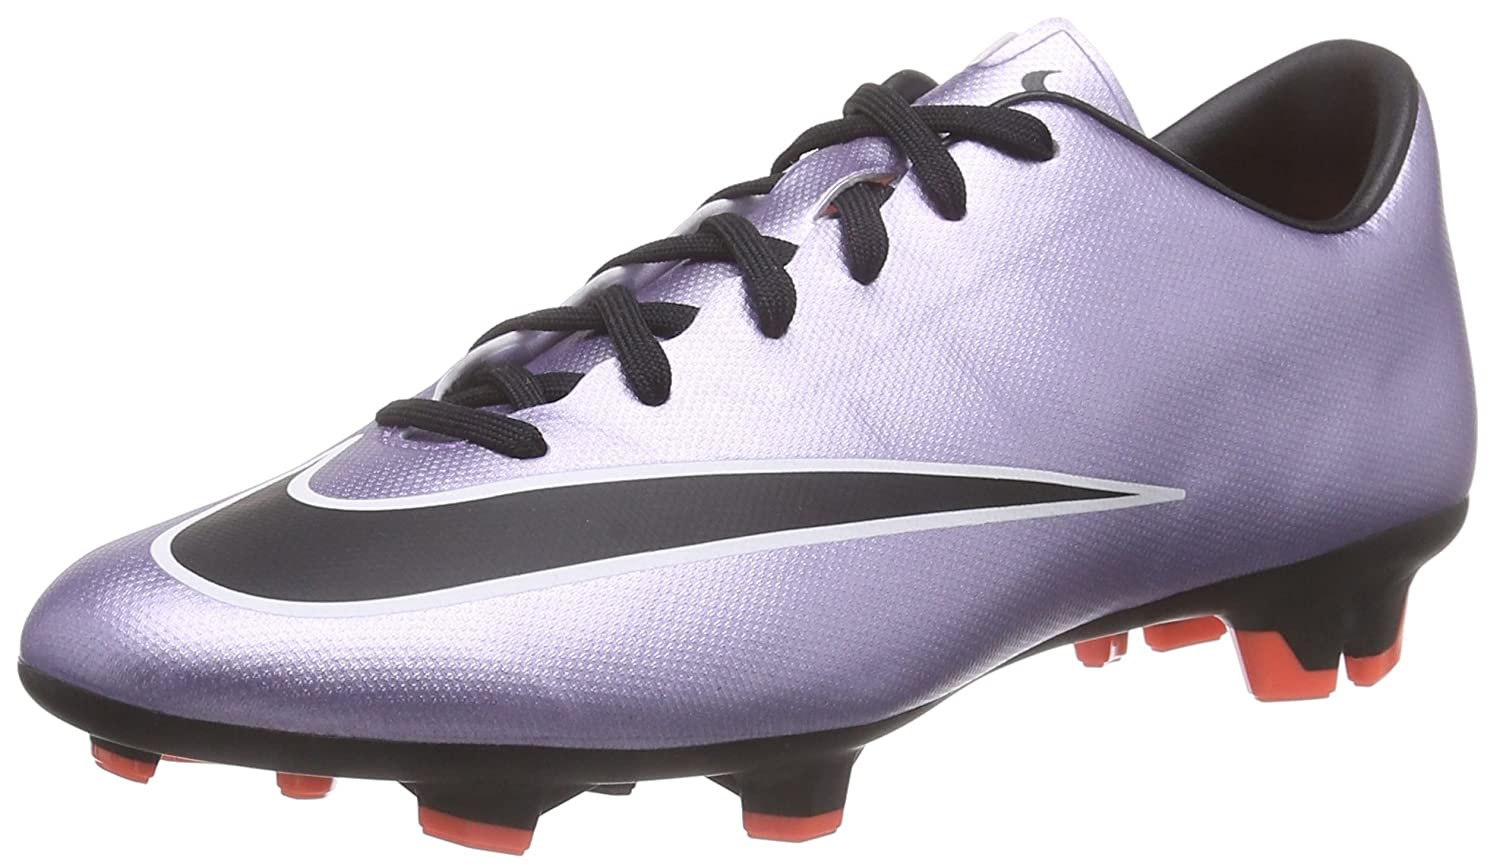 d69ac661ce4 Nike Mercurial Victory V FG Mens Football Boots 651632 Soccer Cleats Firm  Ground (US 11.5